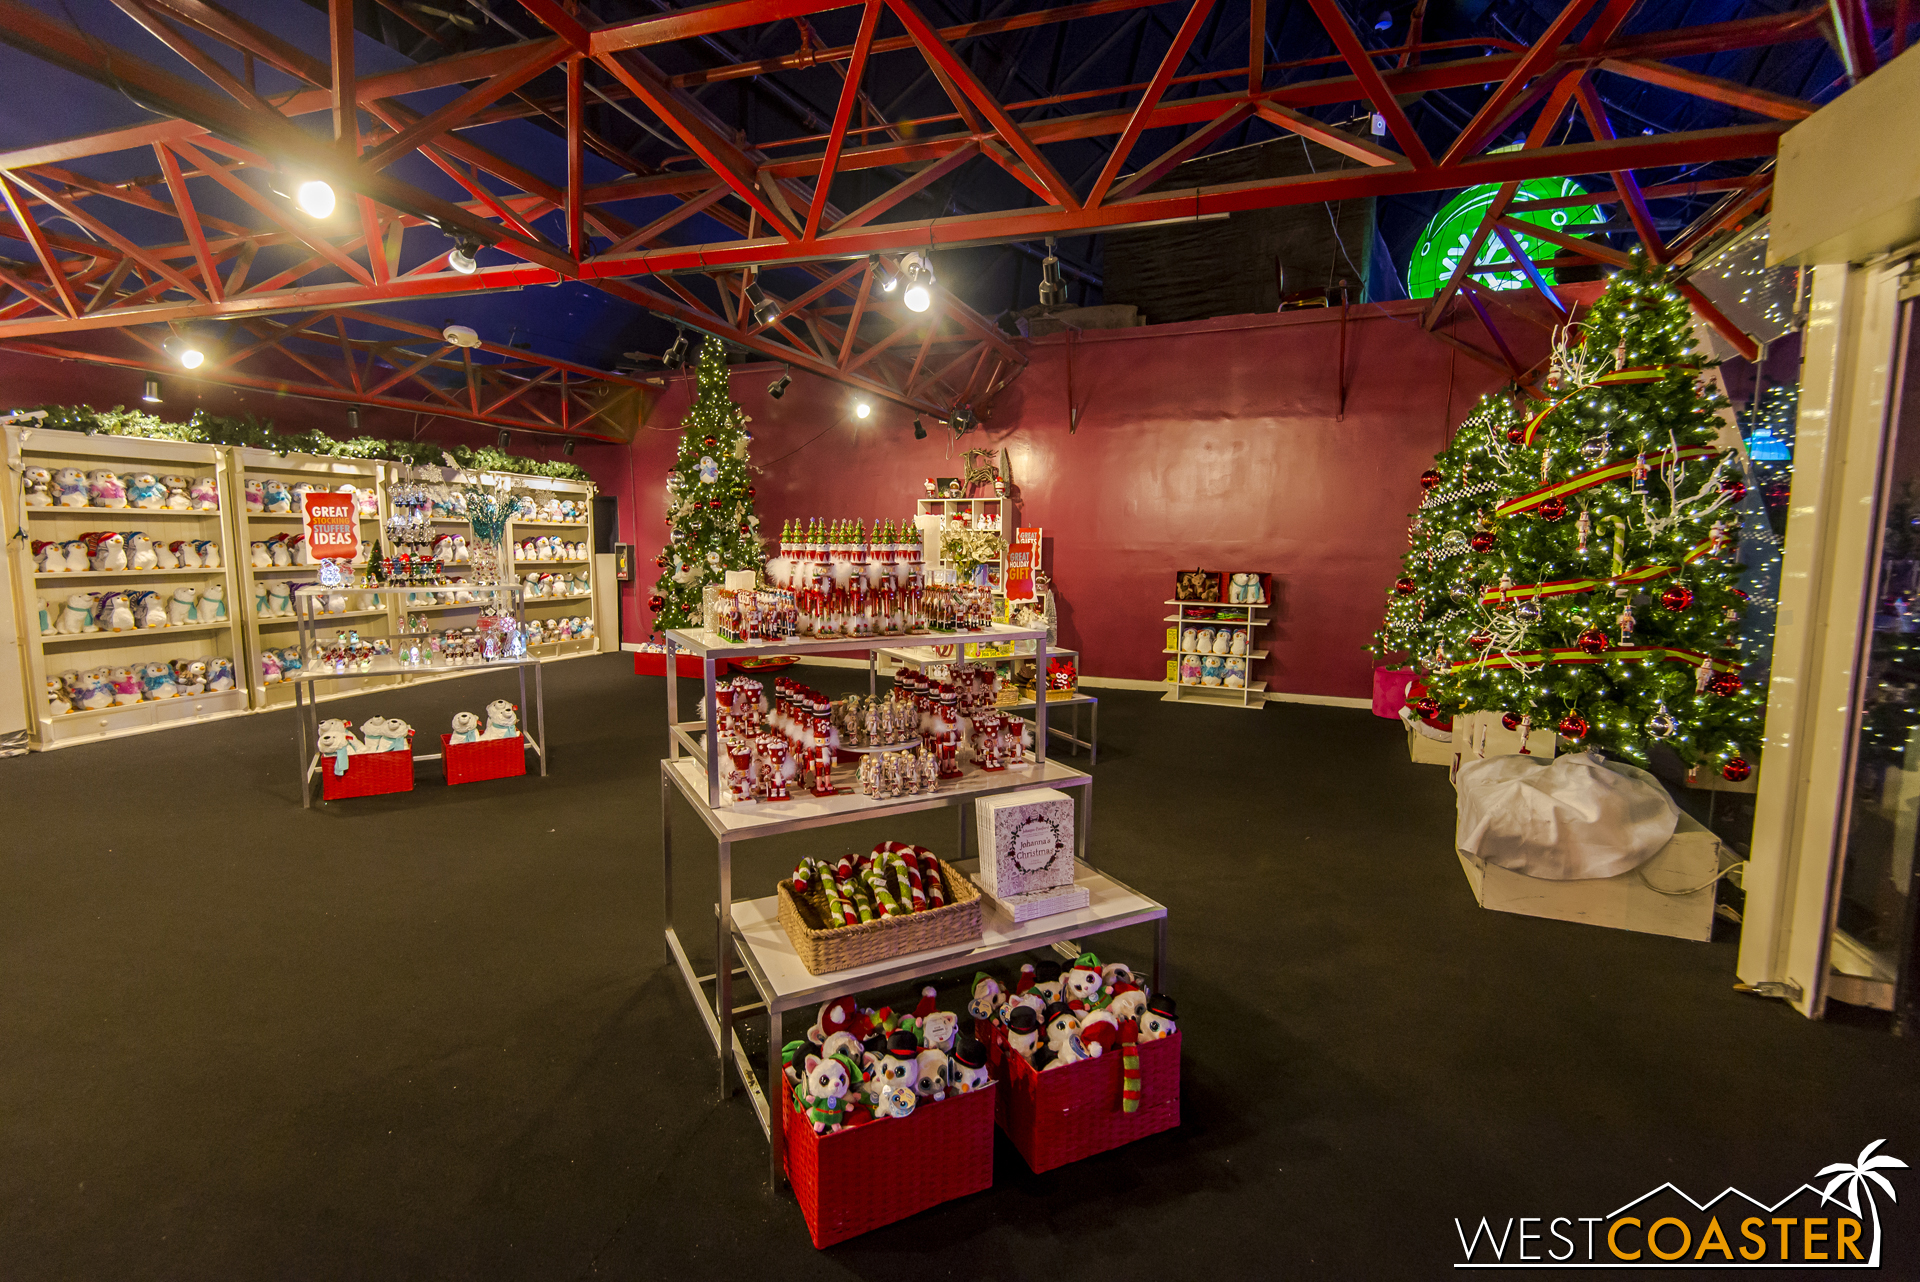 And a shop in which you can buy literally every holiday thingy you could possibly want.